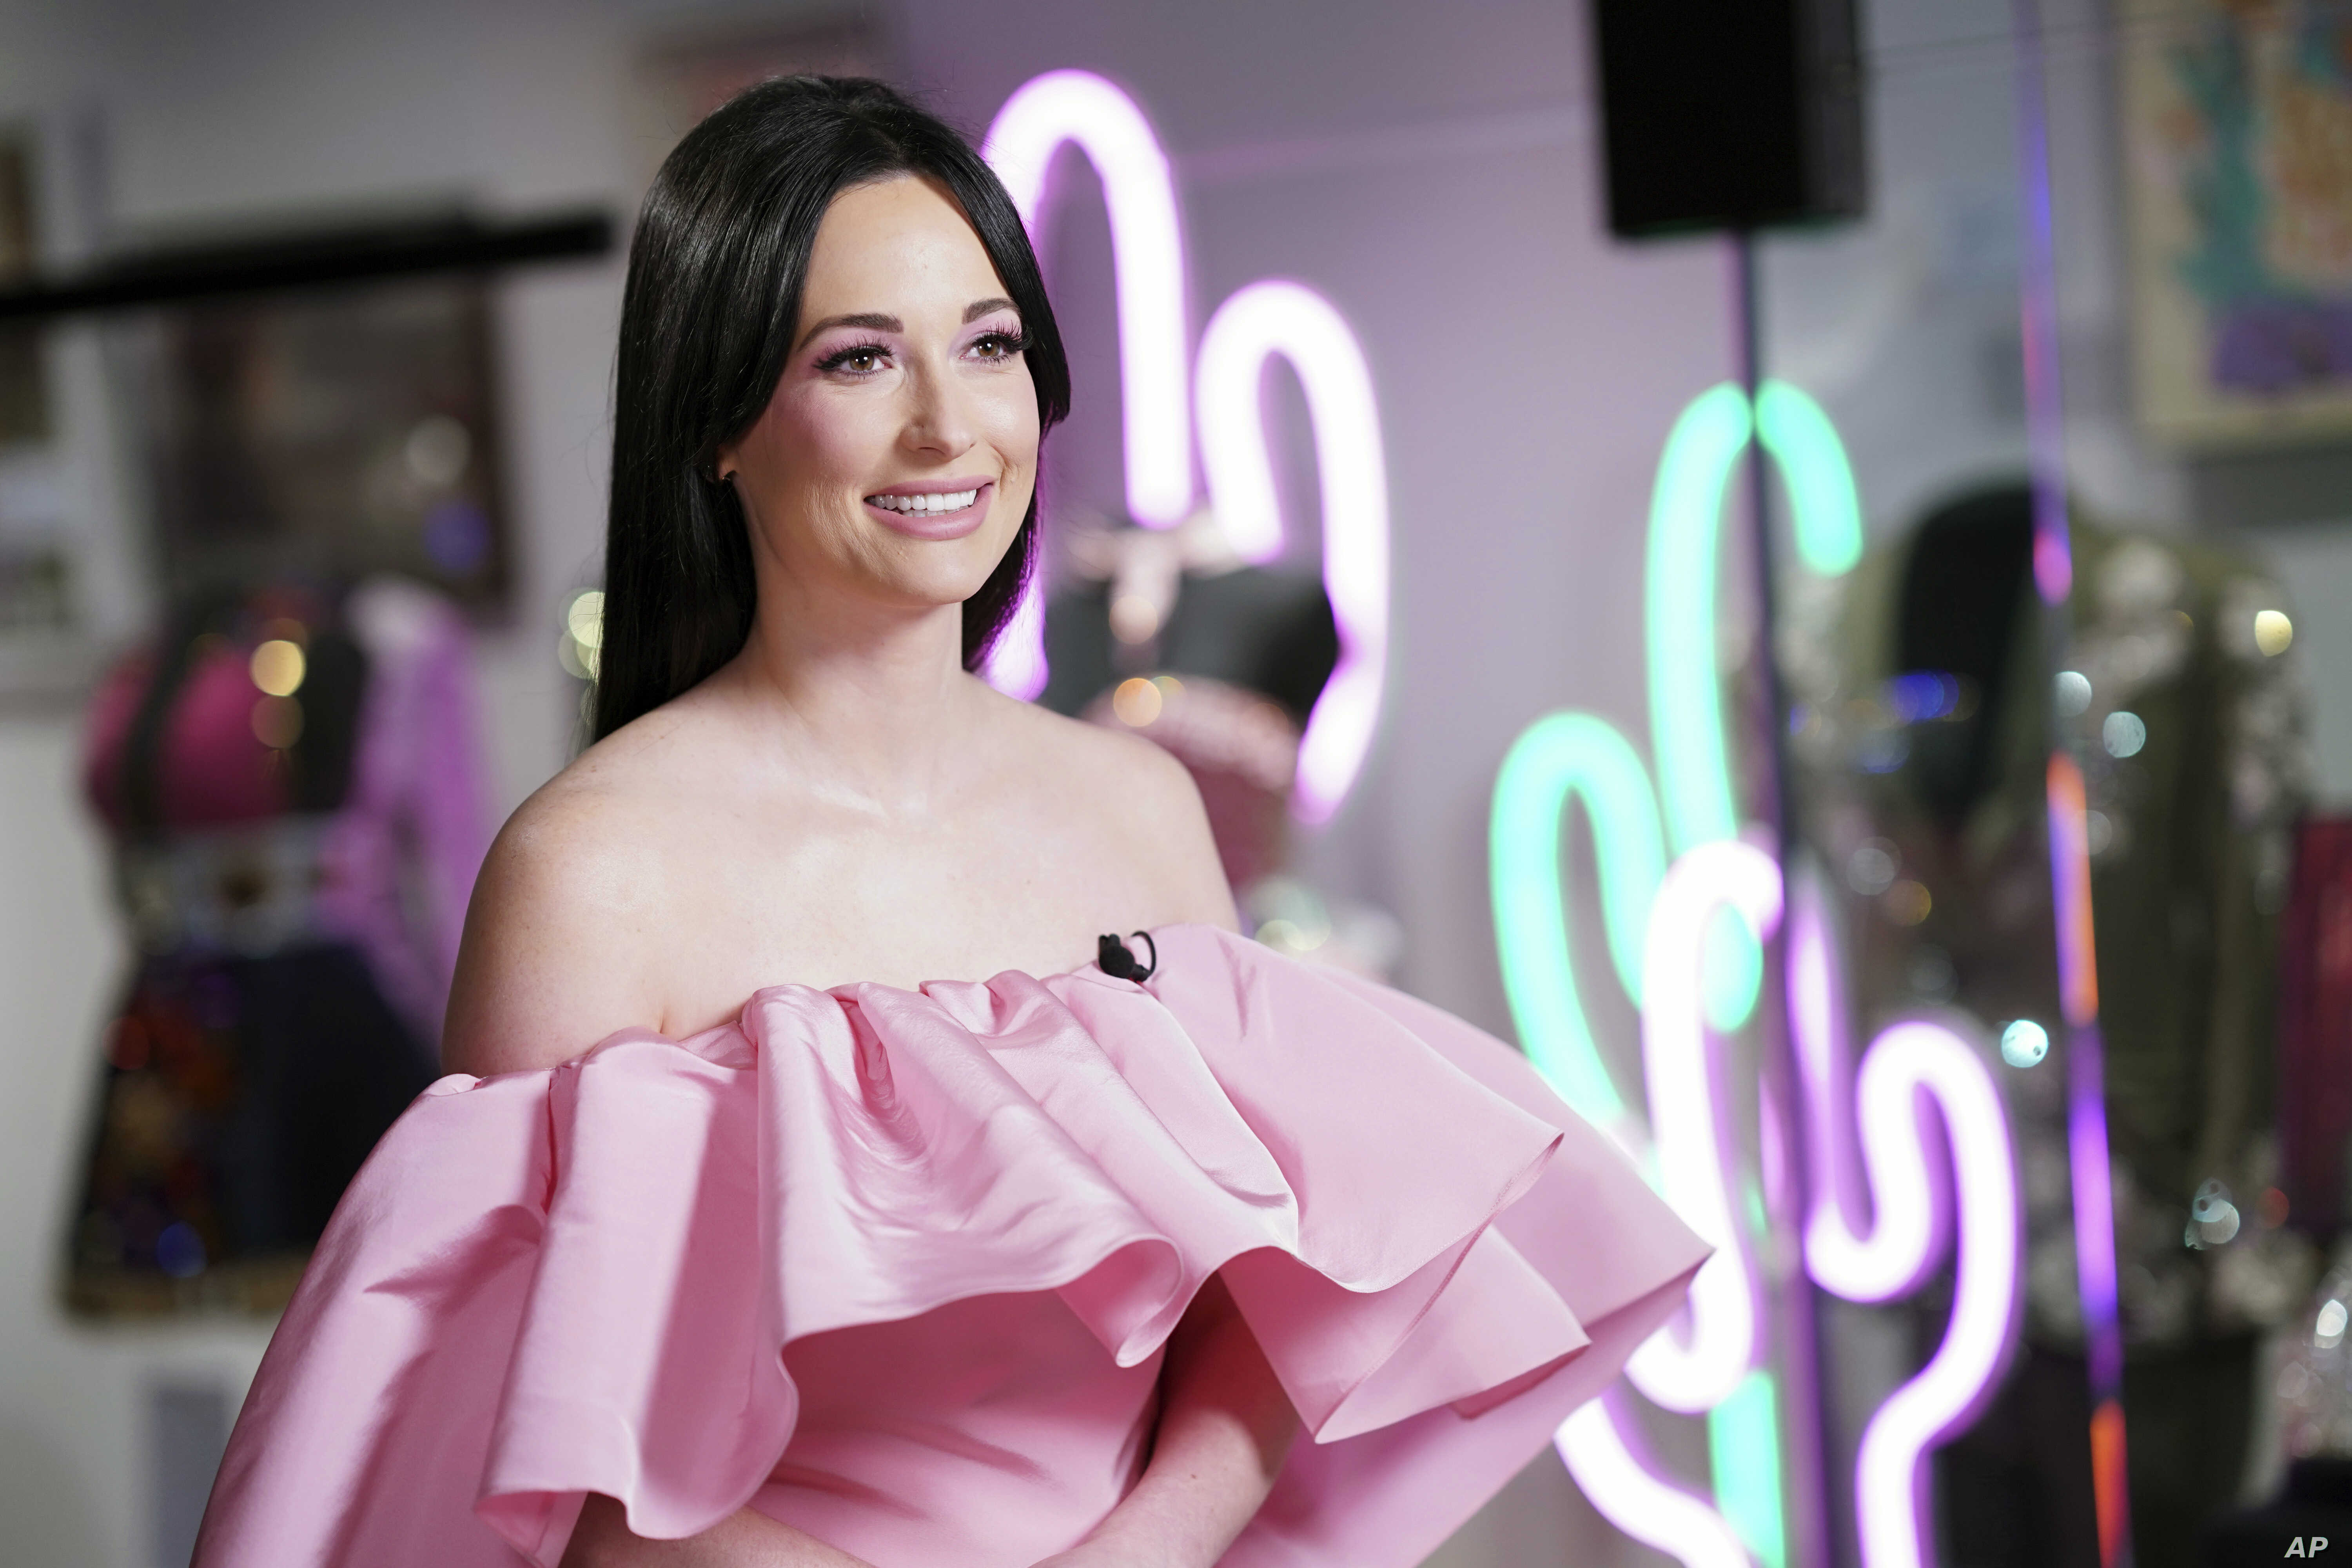 Country singer Kacey Musgraves poses in front of her new exhibit at the Country Music Hall of Fame and Museum in Nashville, Tennessee, July 1, 2019.